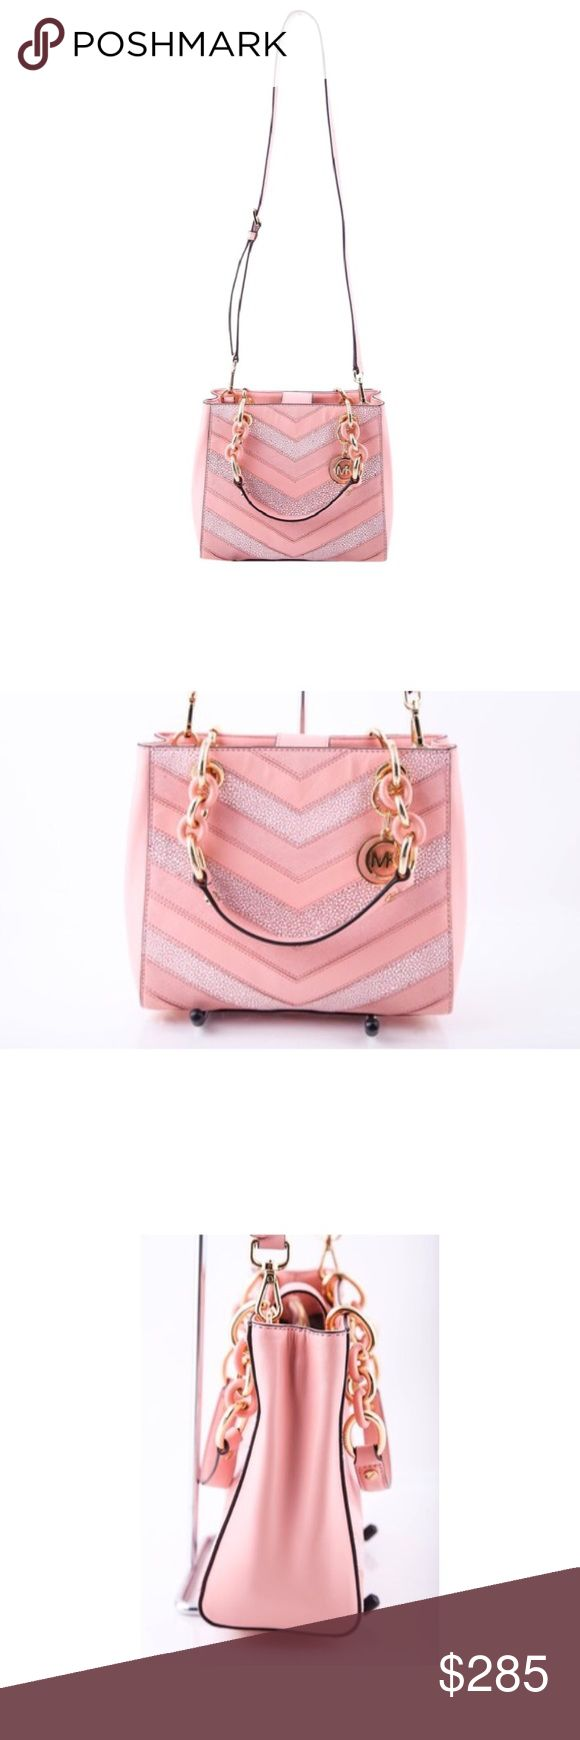 "Michael Kors • Blush Chevron Bag Fashionably updated in soft, chevron patch leather with a neat & tidy interior and matching links, MICHAEL Michael Kors' small Cynthia satchel offers an endlessly stylish look that will take you through the seasons. Double handles with 6-1/2"" drop; adjustable strap with 18""-20"" drop Magnetic snap closure Exterior features 18k gold-plated hardware Interior features center zip compartment, 1 zip pocket, 4 open pockets and key clip 9.75"" W x 8"" H x 3.25"" D New…"